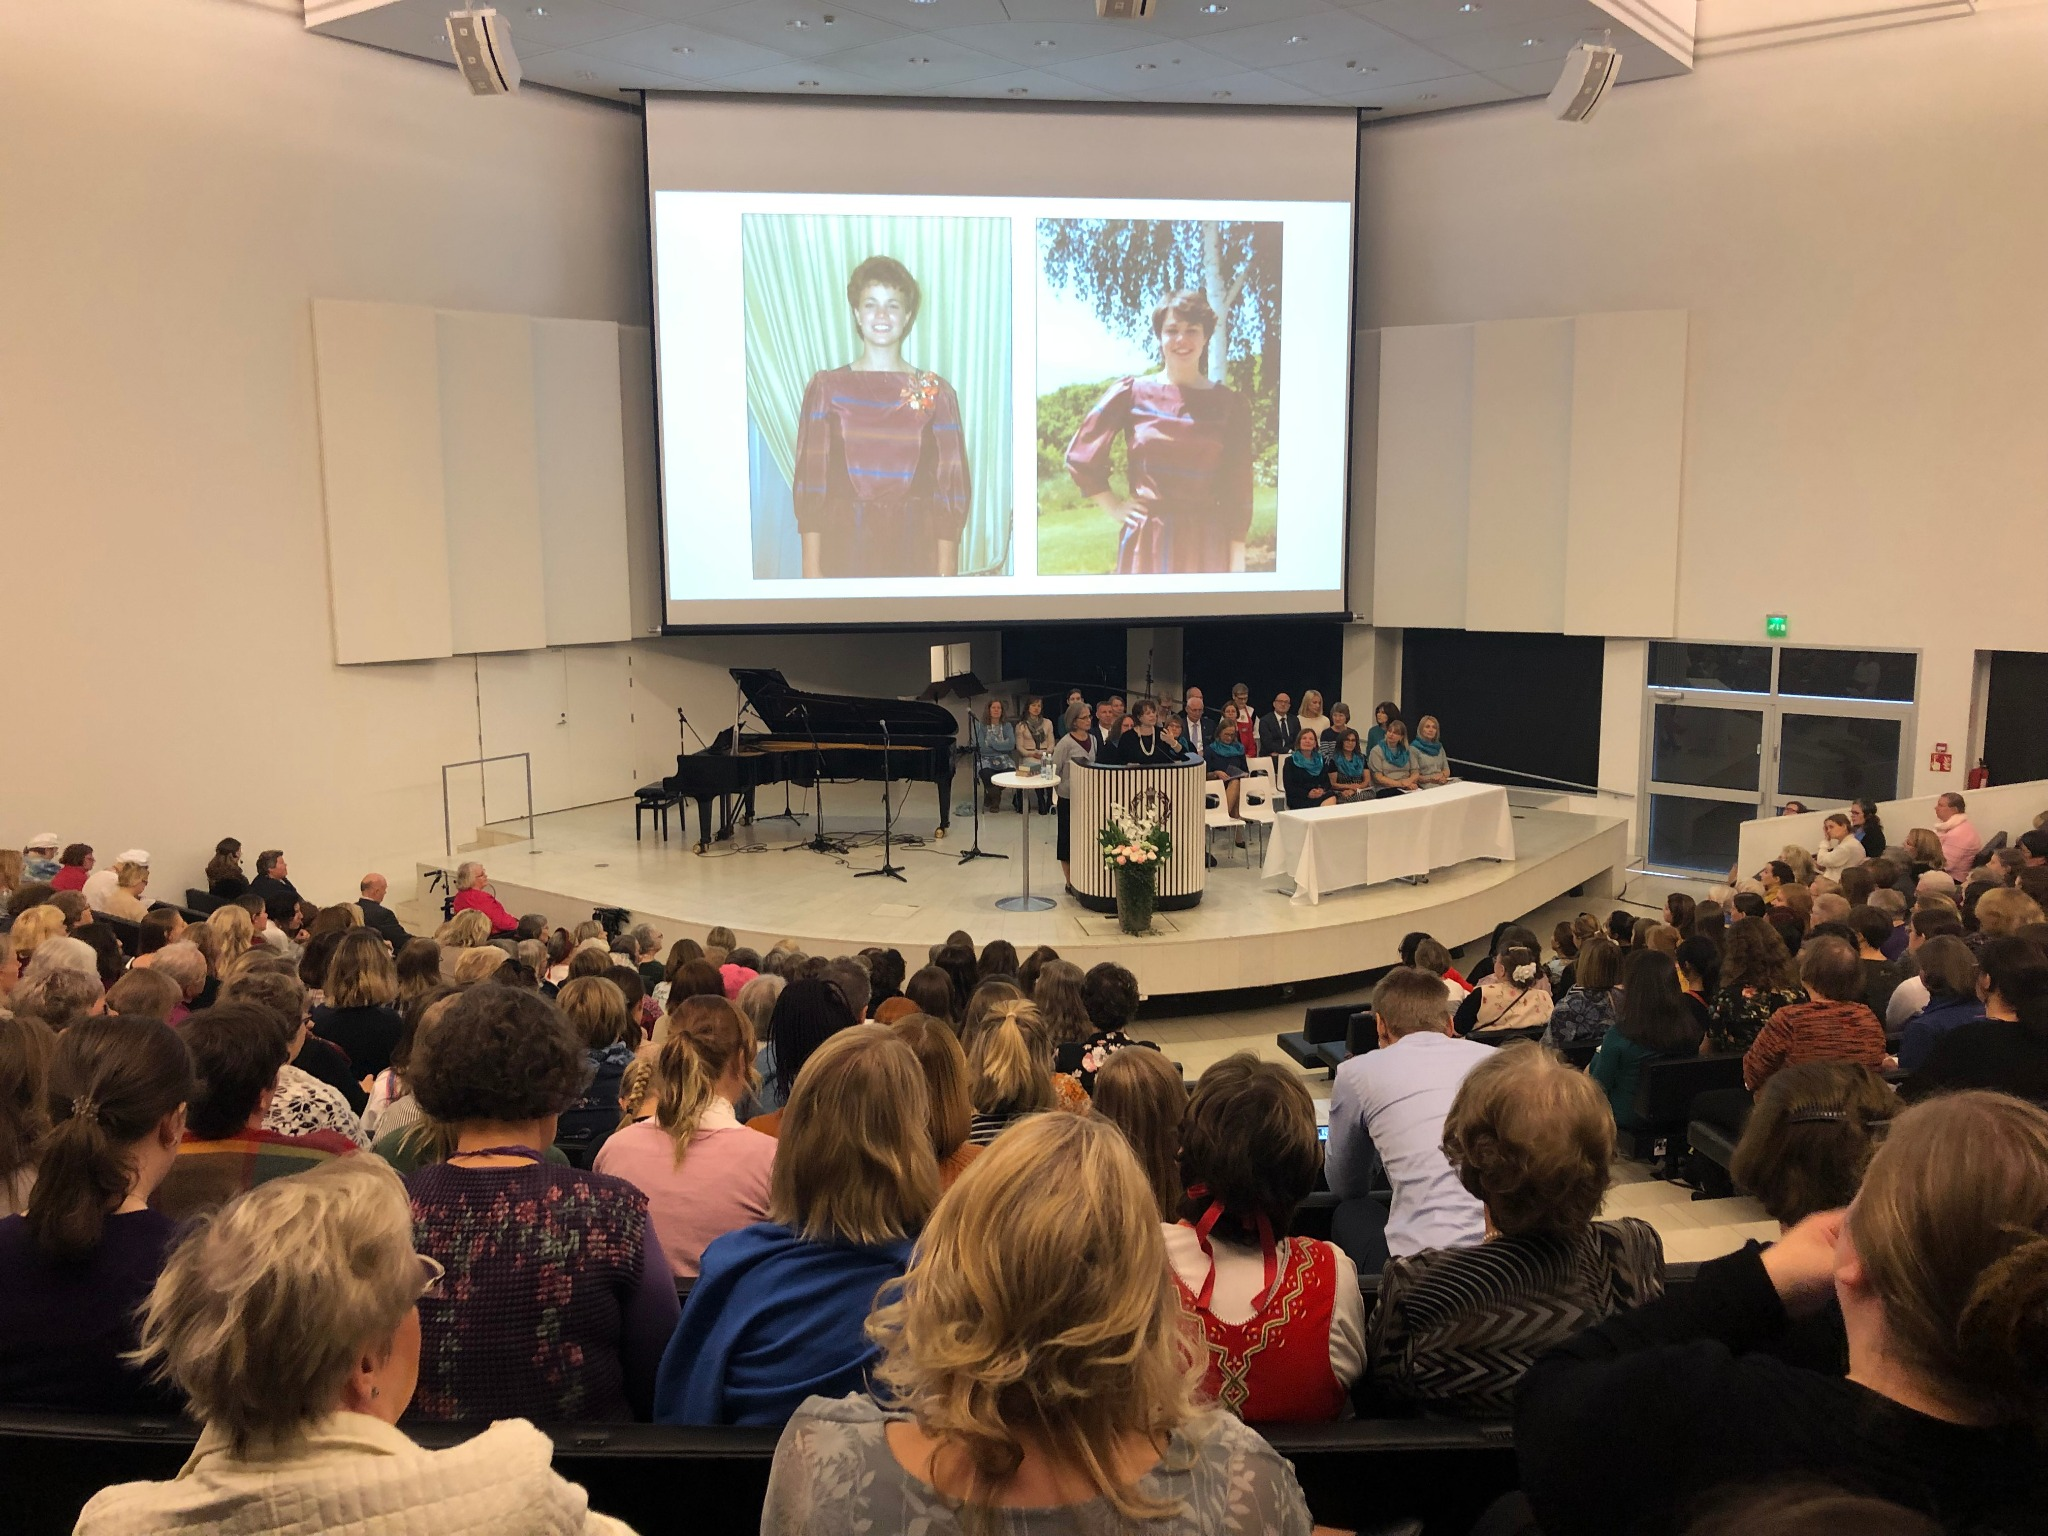 Sister Sharon Eubank shares mission photos with hundreds of attendees at a national women's conference in Tampere, Finland, Saturday, September 21, 2019. She delivered parts of her message in Finnish.